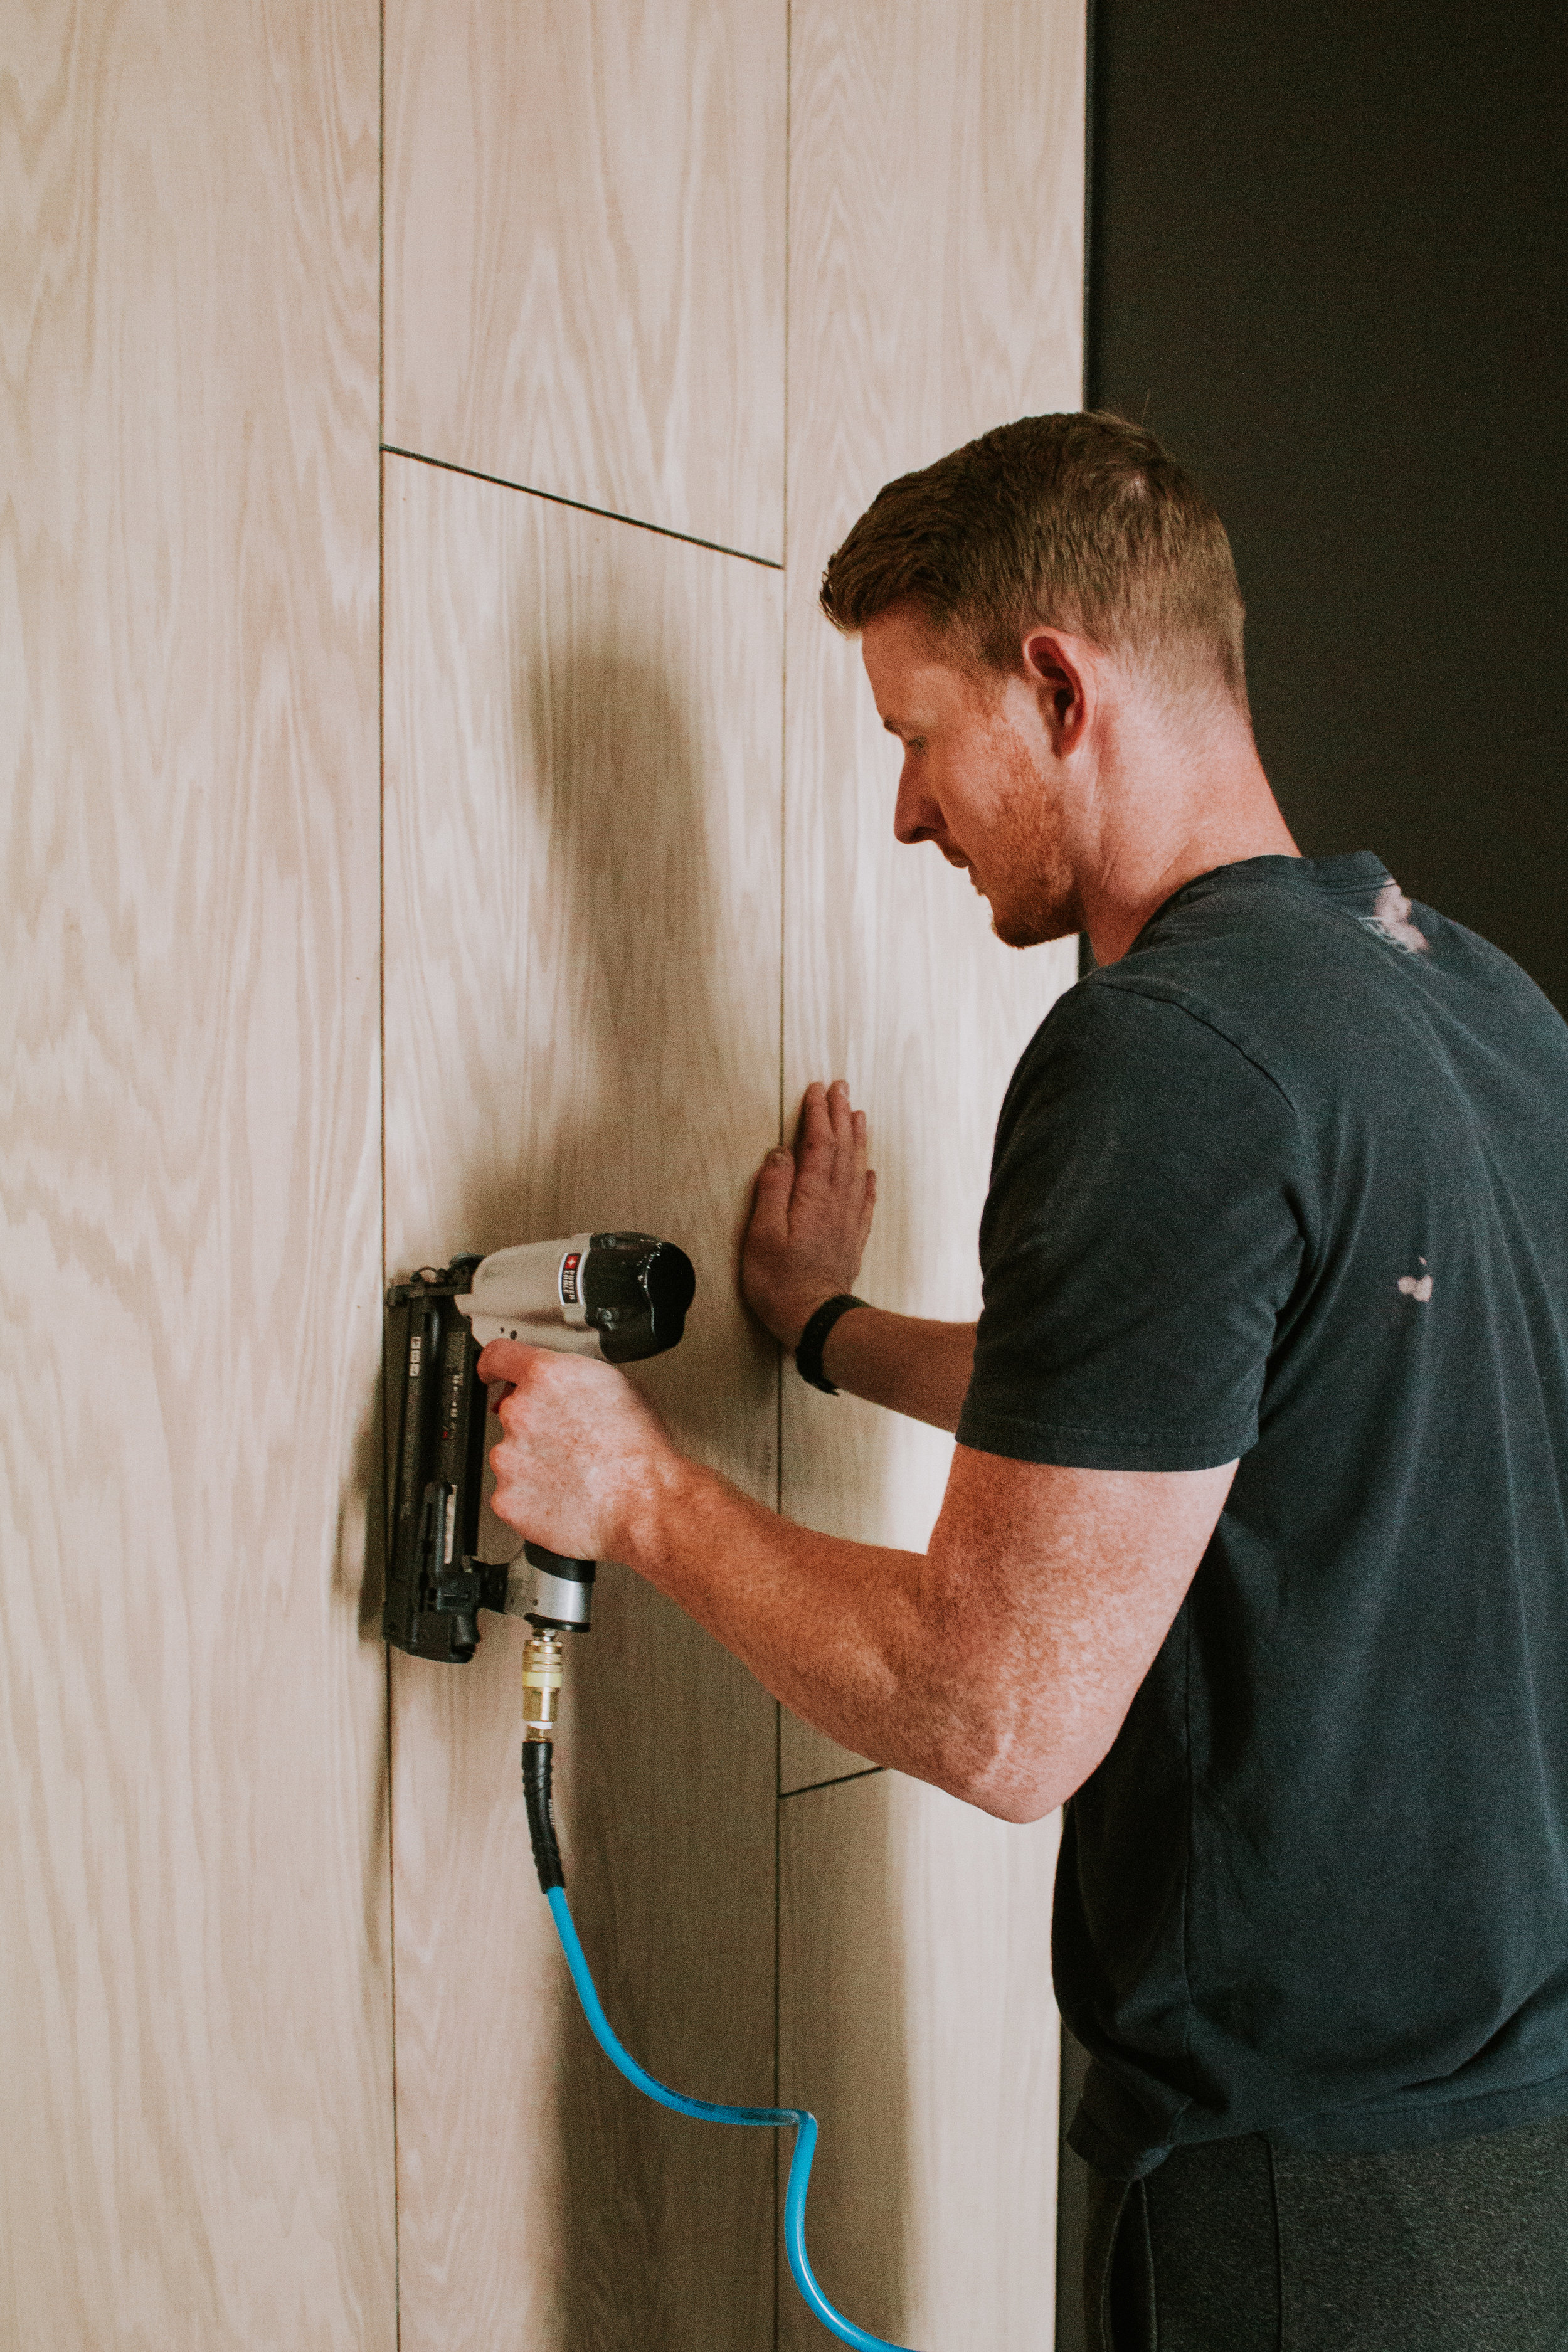 DIY Oak Plywood Accent Wall by Nadine Stay - turn a boring wall into a feature wall with vertical oak wood planking. Modern and retro style staggered accent wall with light oak wood. Speak Podcast Studio in Lincoln, Nebraska